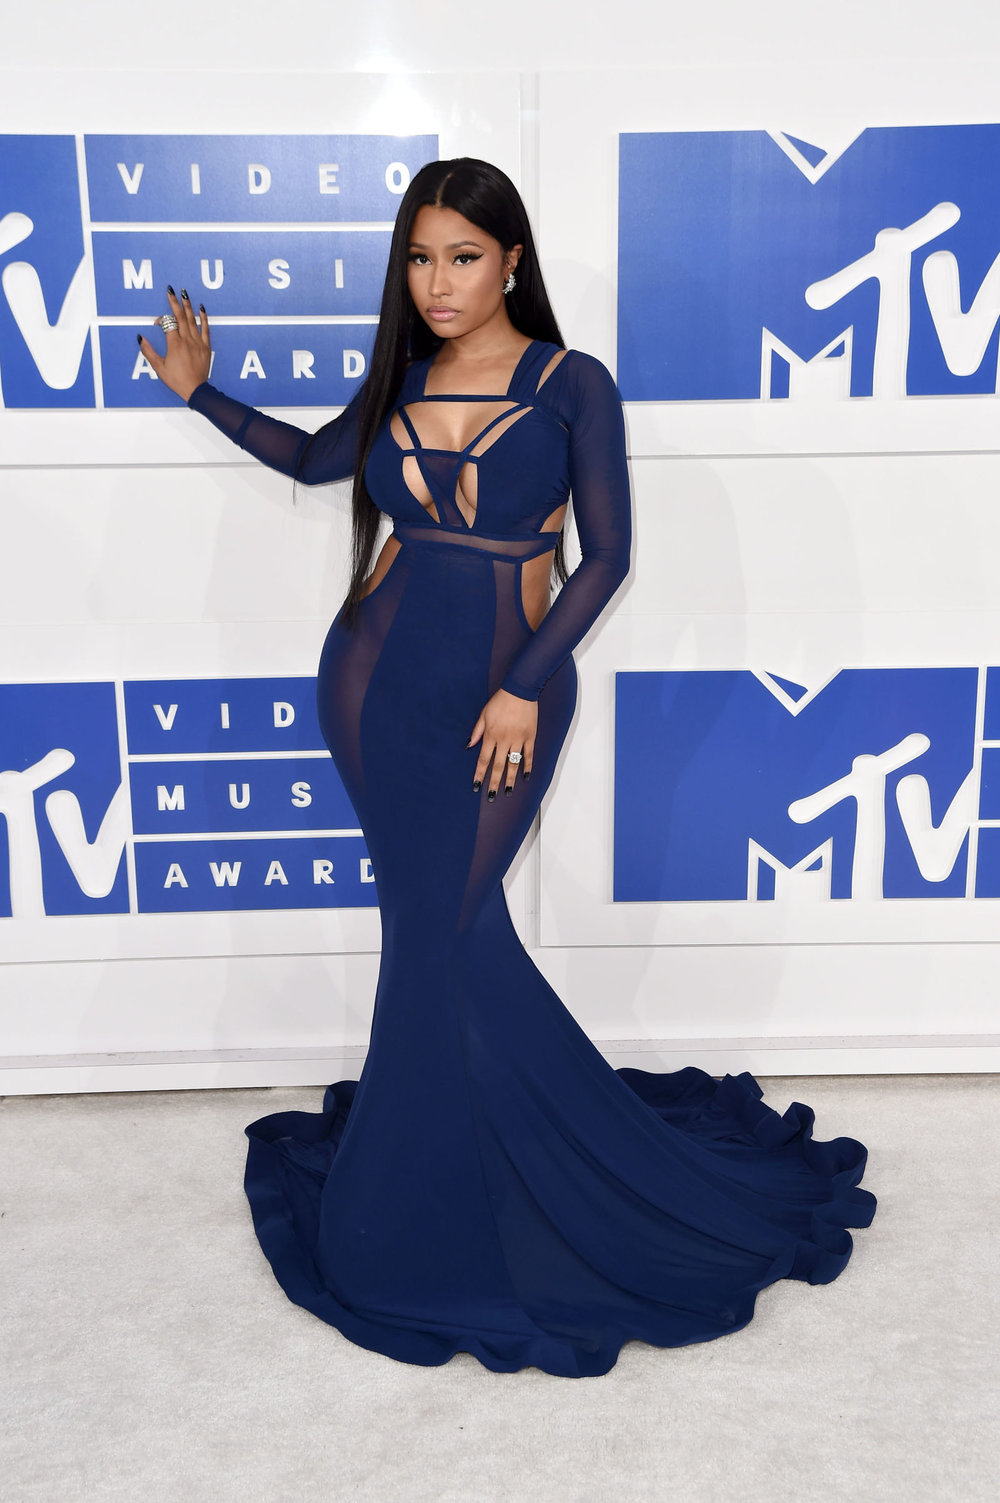 Working those lady lumps to the max, Nicki Minaj knows how to dress to impress with these strategic cut outs and mesh sides leaving just enough to the imagination.